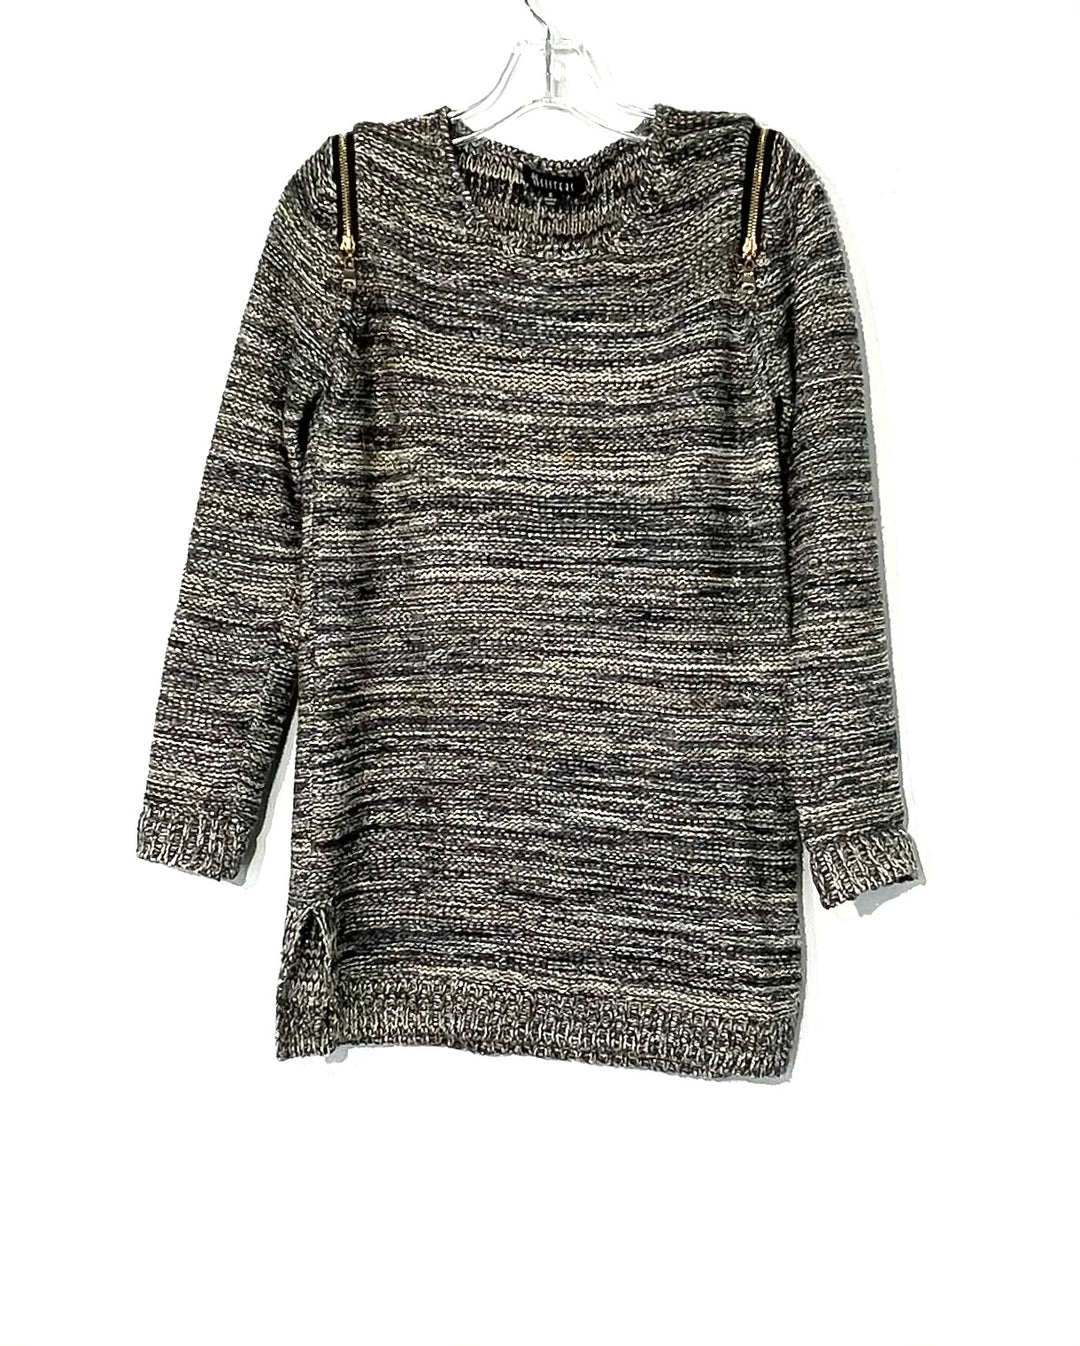 Primary Photo - BRAND:    SISTERS<BR>STYLE: SWEATER LIGHTWEIGHT <BR>COLOR: GREY SPARKLES<BR>SIZE: S <BR>OTHER INFO: SISTERS - <BR>SKU: 262-26275-73518<BR>PHOTOS DON'T SHOW THE SPARKLES